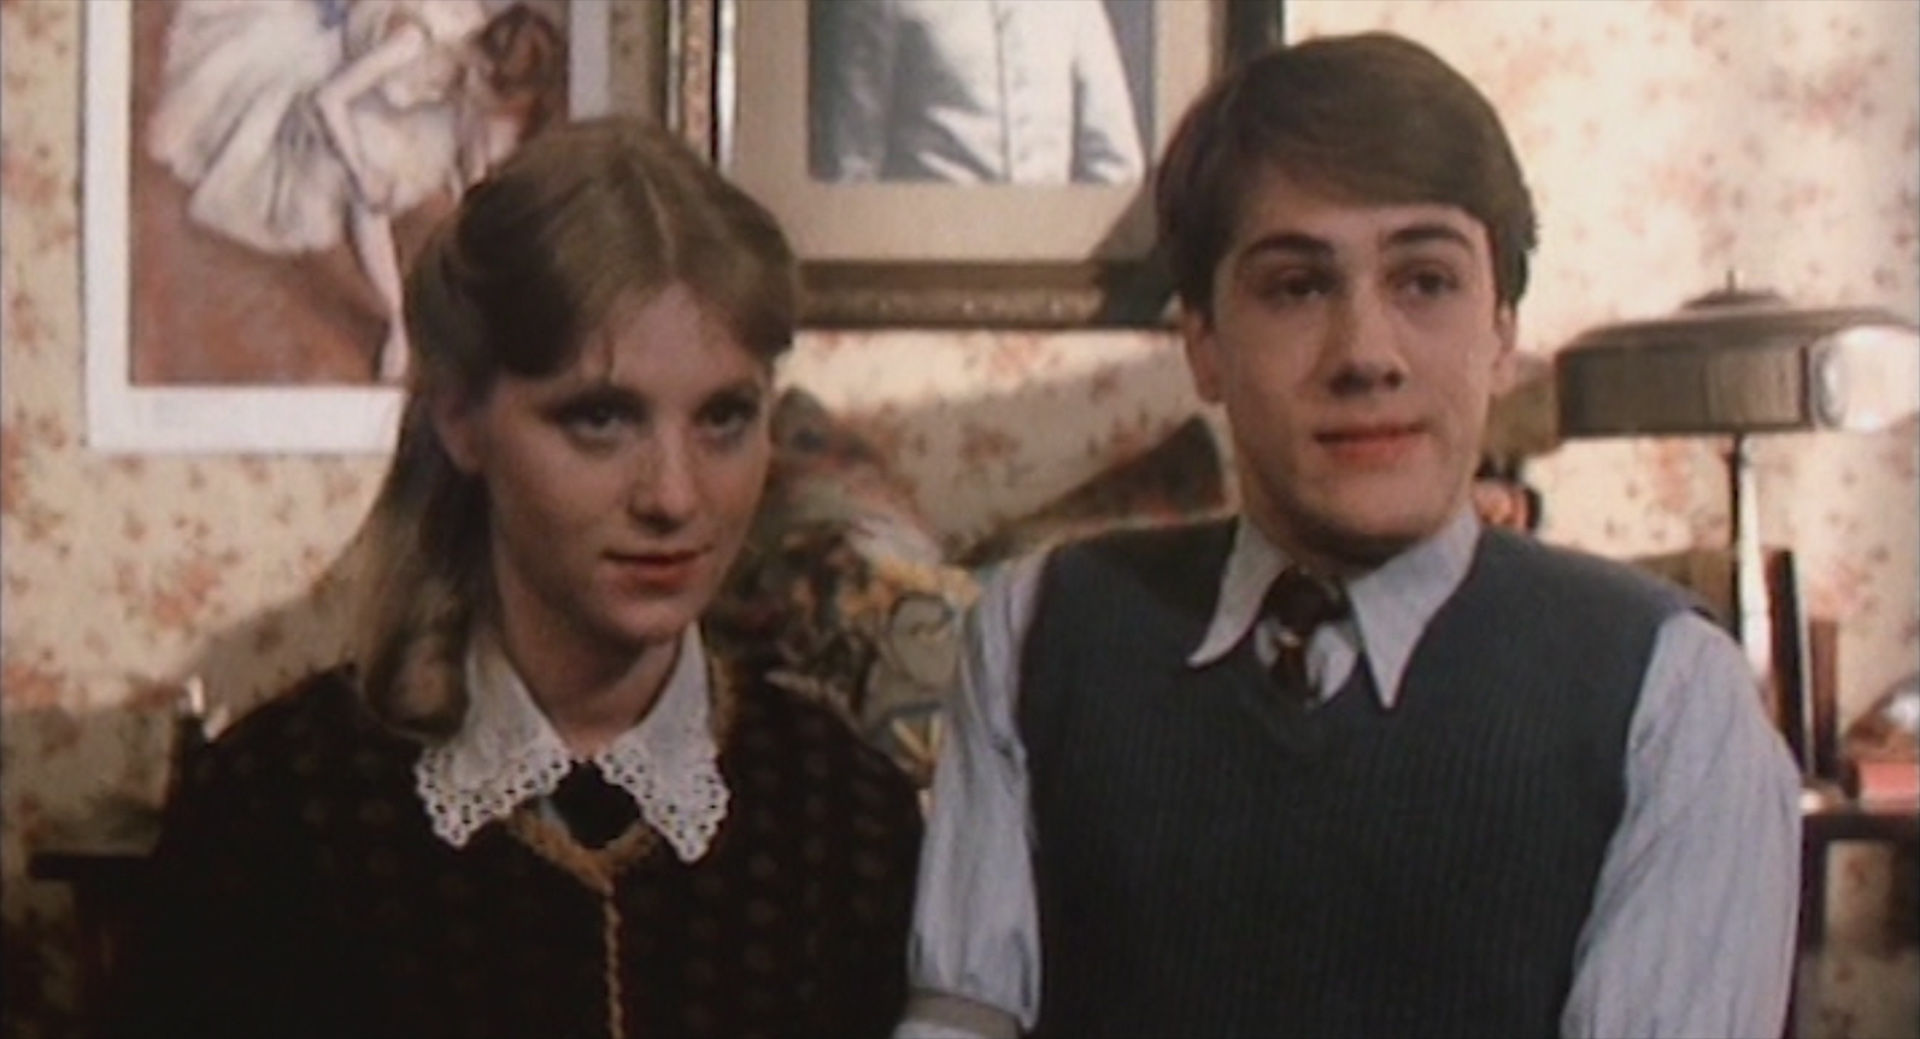 Esther Christinat (Edes neue Flamme), Christoph Waltz (Ede